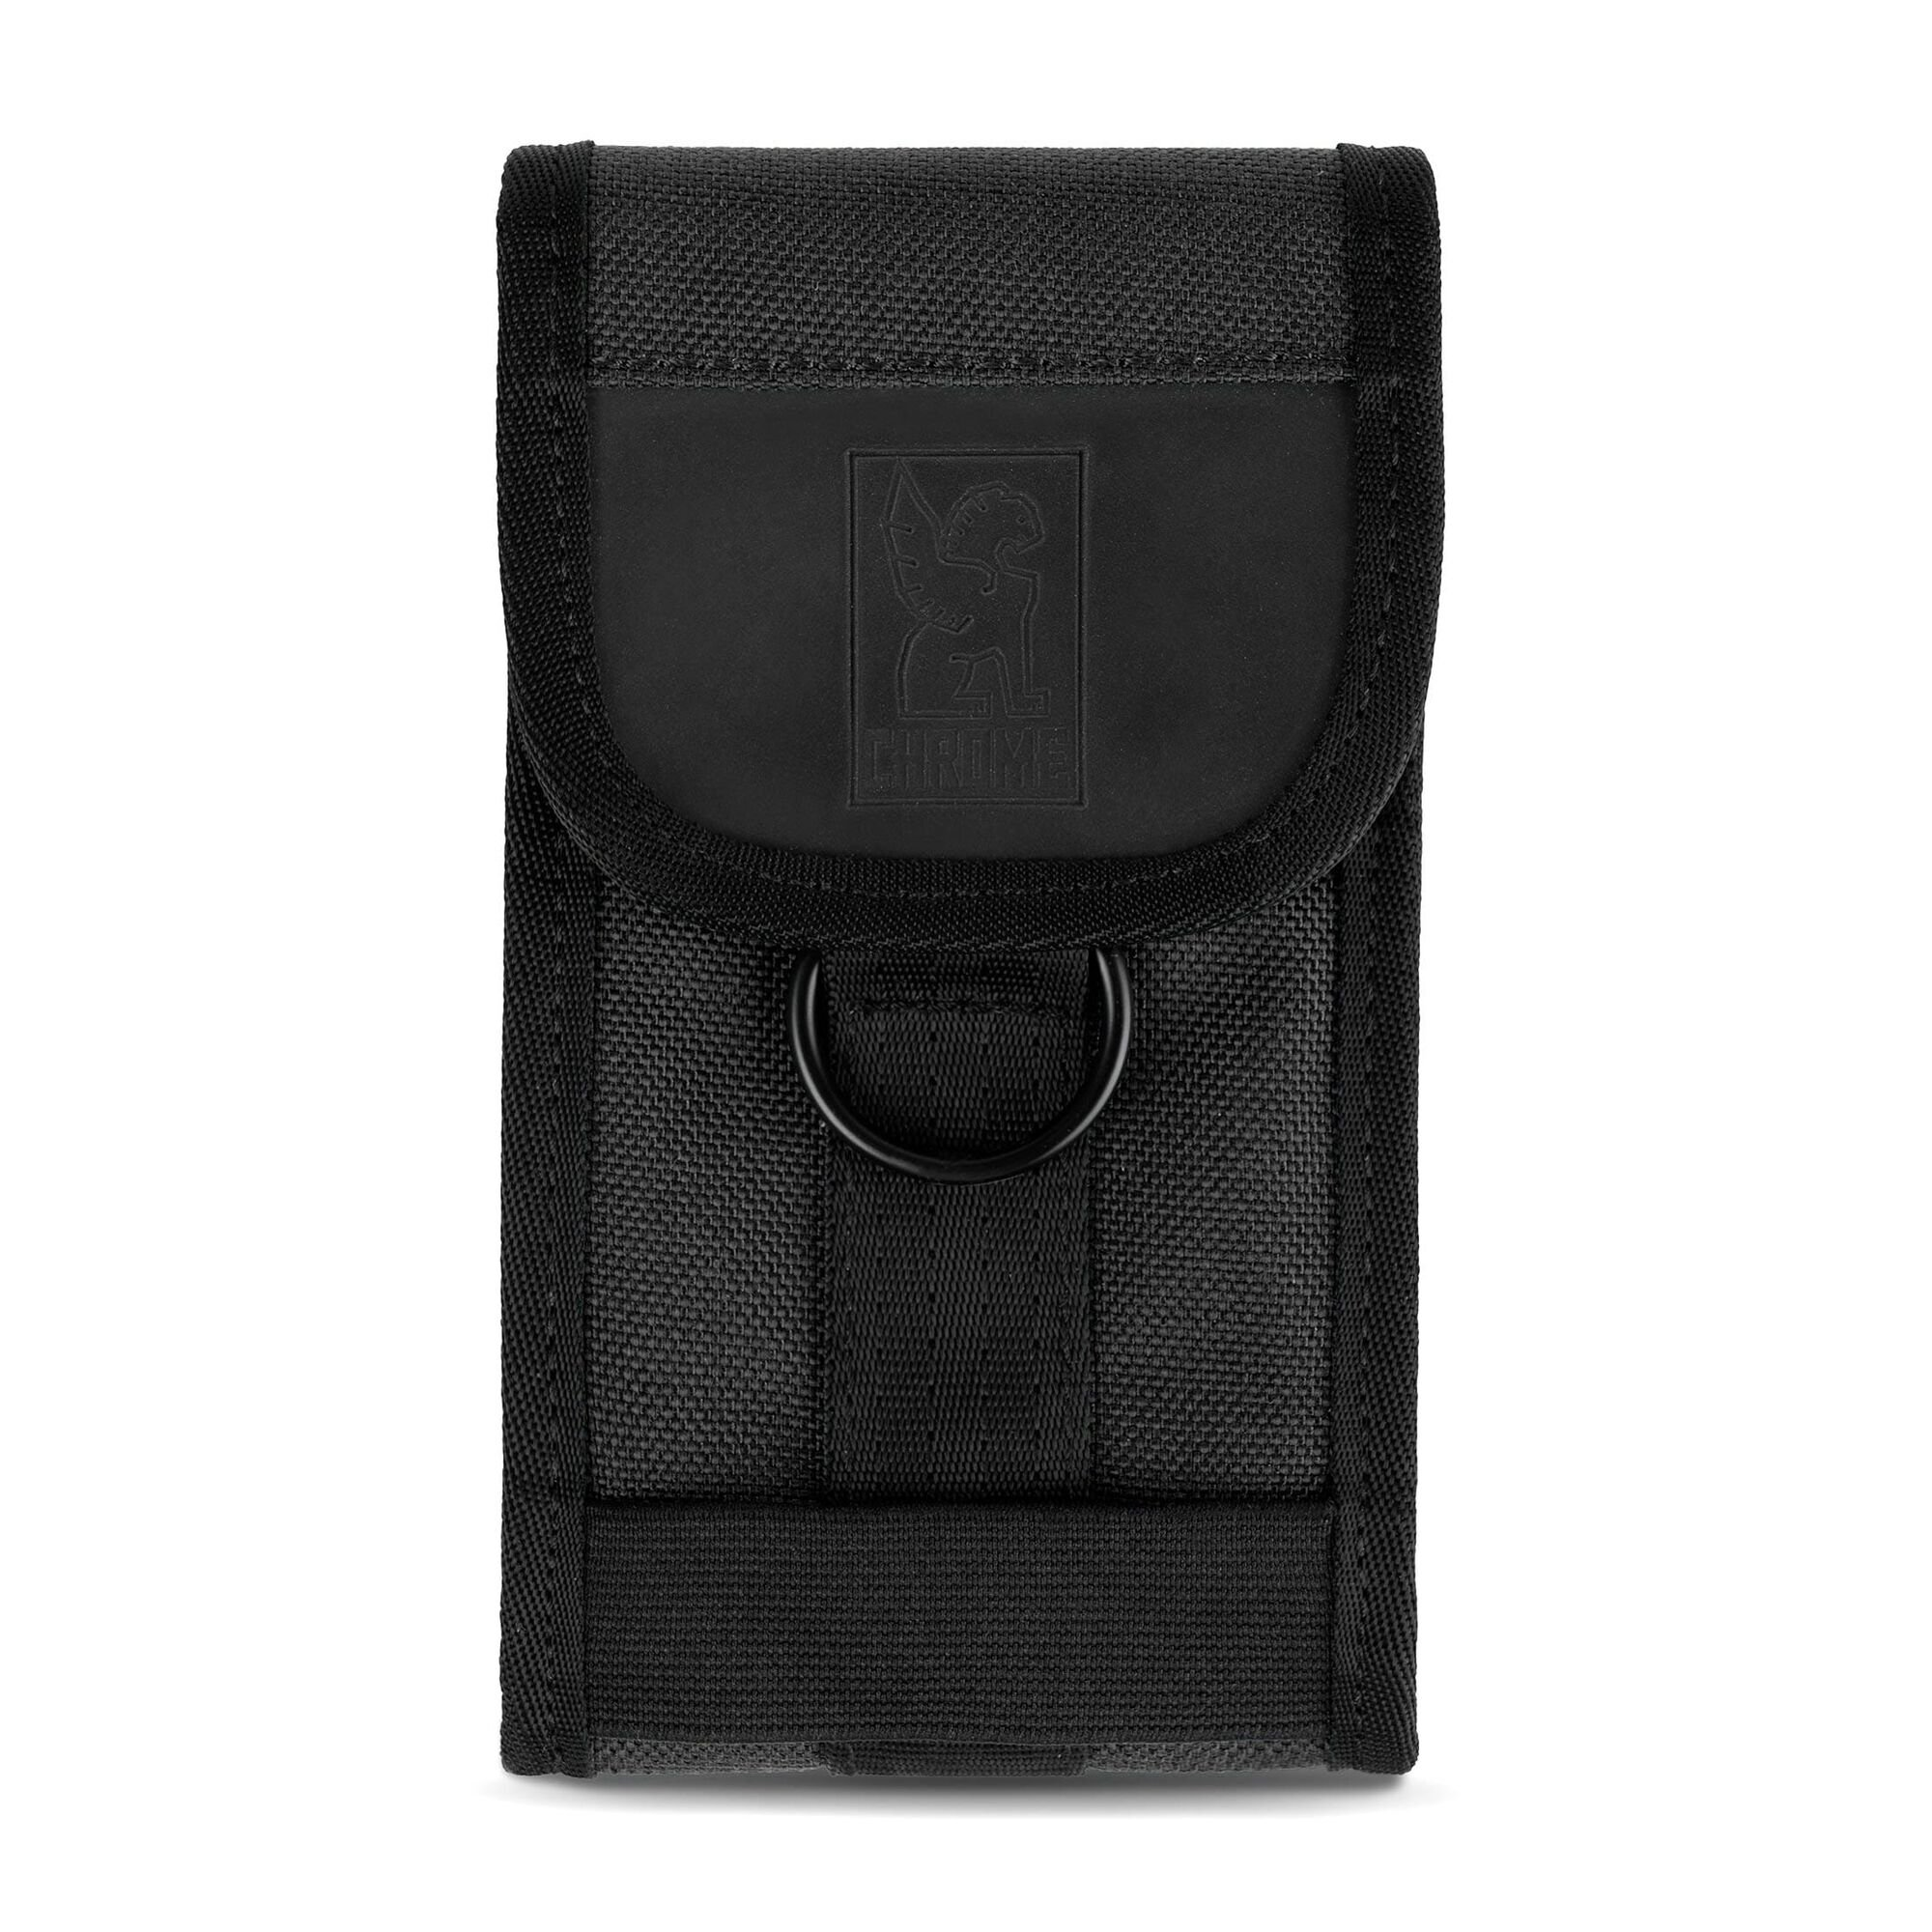 6c15df1e30 Phone Pouch - Amplify your Gear